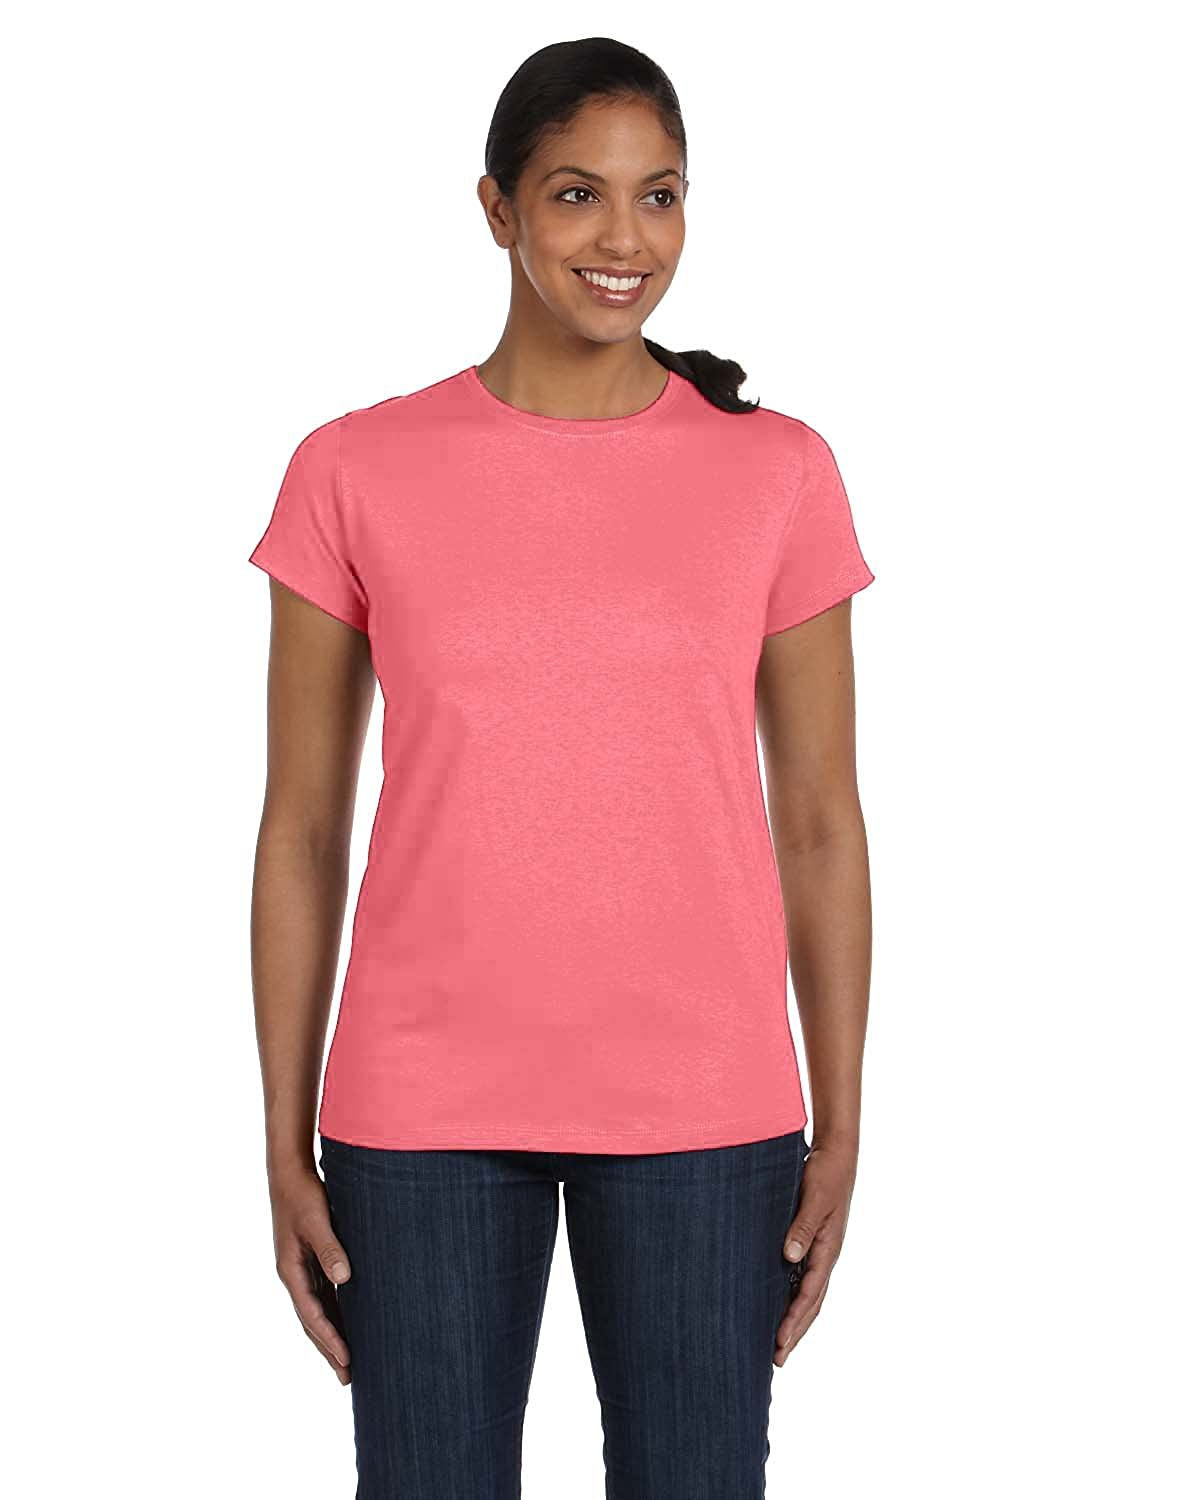 7752b38423 Amazon.com  Hanes Women s Relaxed Fit Jersey ComfortSof Crewneck T-Shirt   Clothing